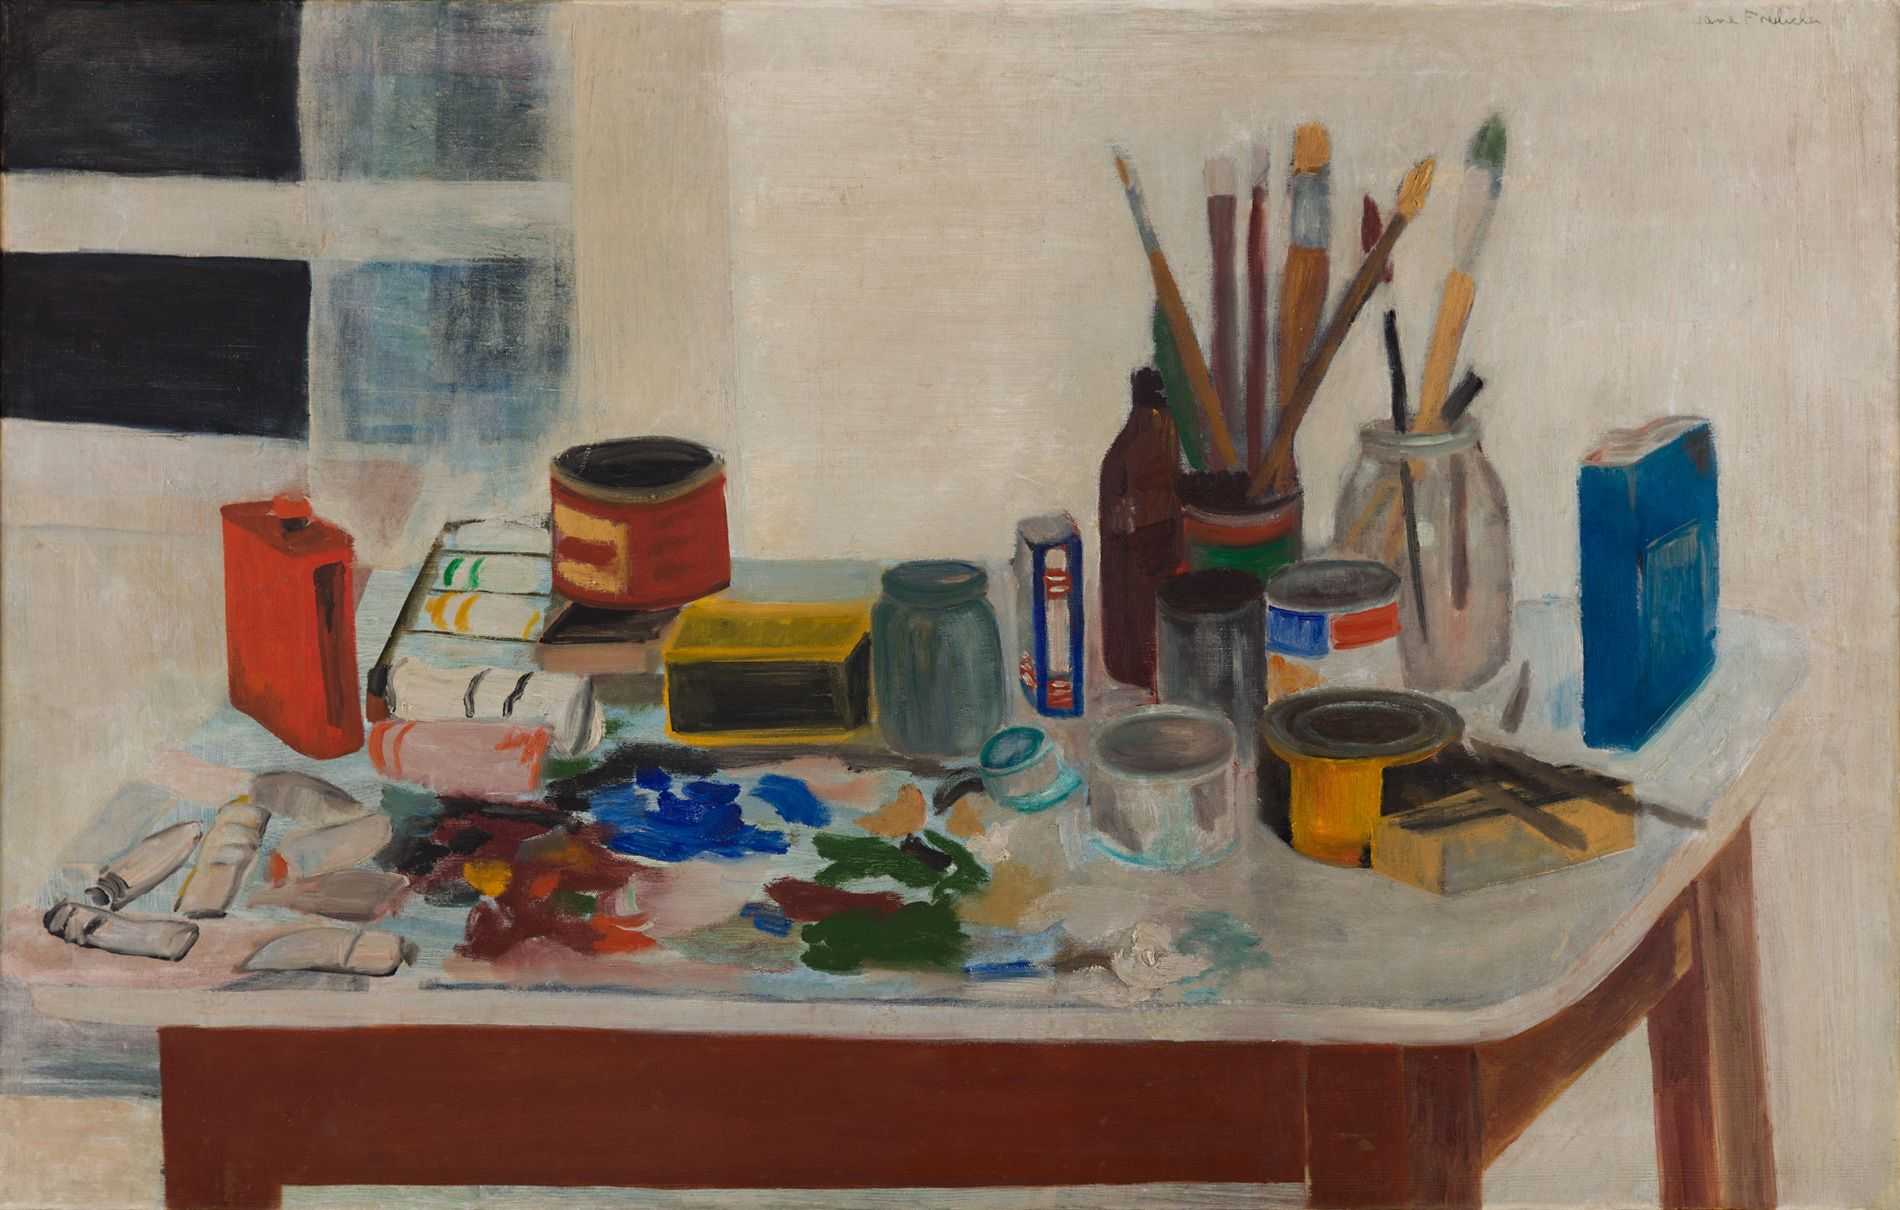 Jane Freilicher, The Painting Table, 1954, from